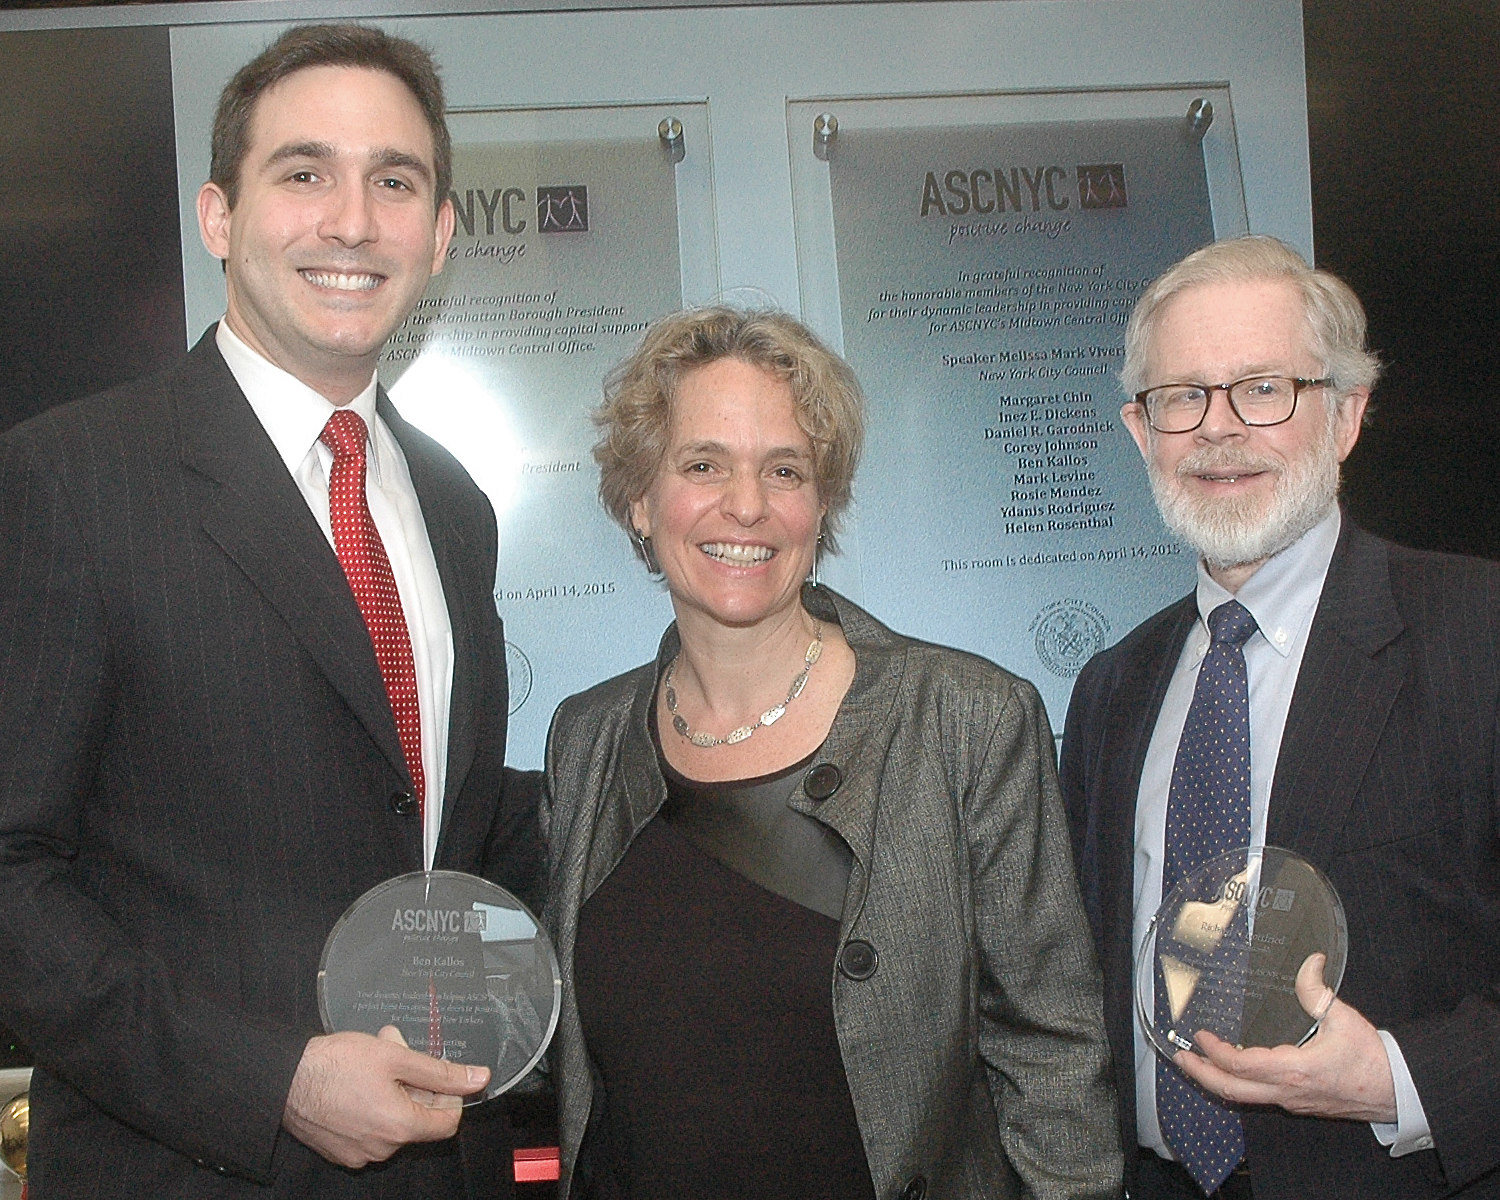 NYC Council Member Ben Kallos - ASCNYC CEO/ED Sharen Duke and NYS Assembly Member Richard N. Gottfried